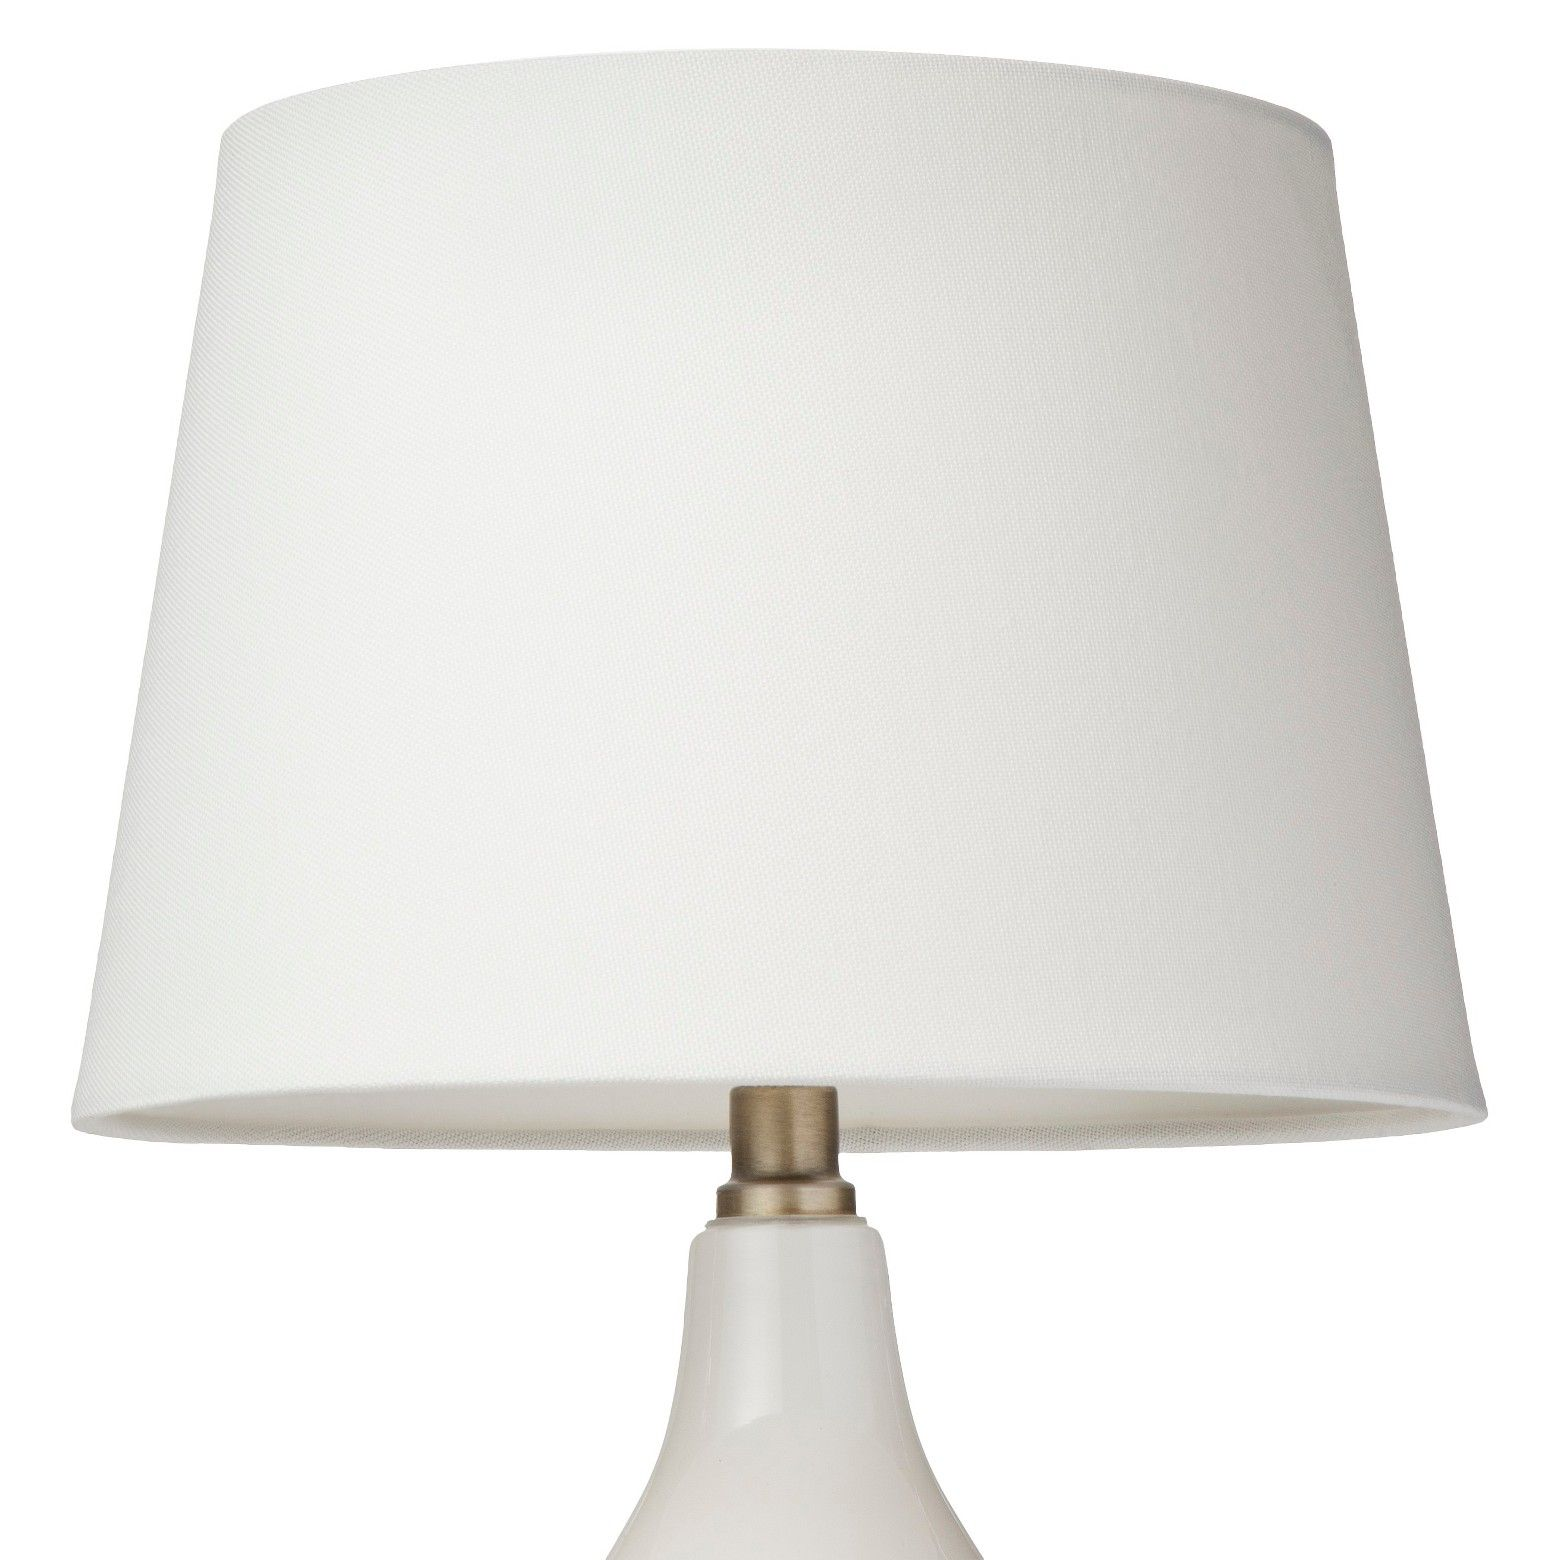 Add Simple Elegance To Any Room With This Threshold Lamp Shade